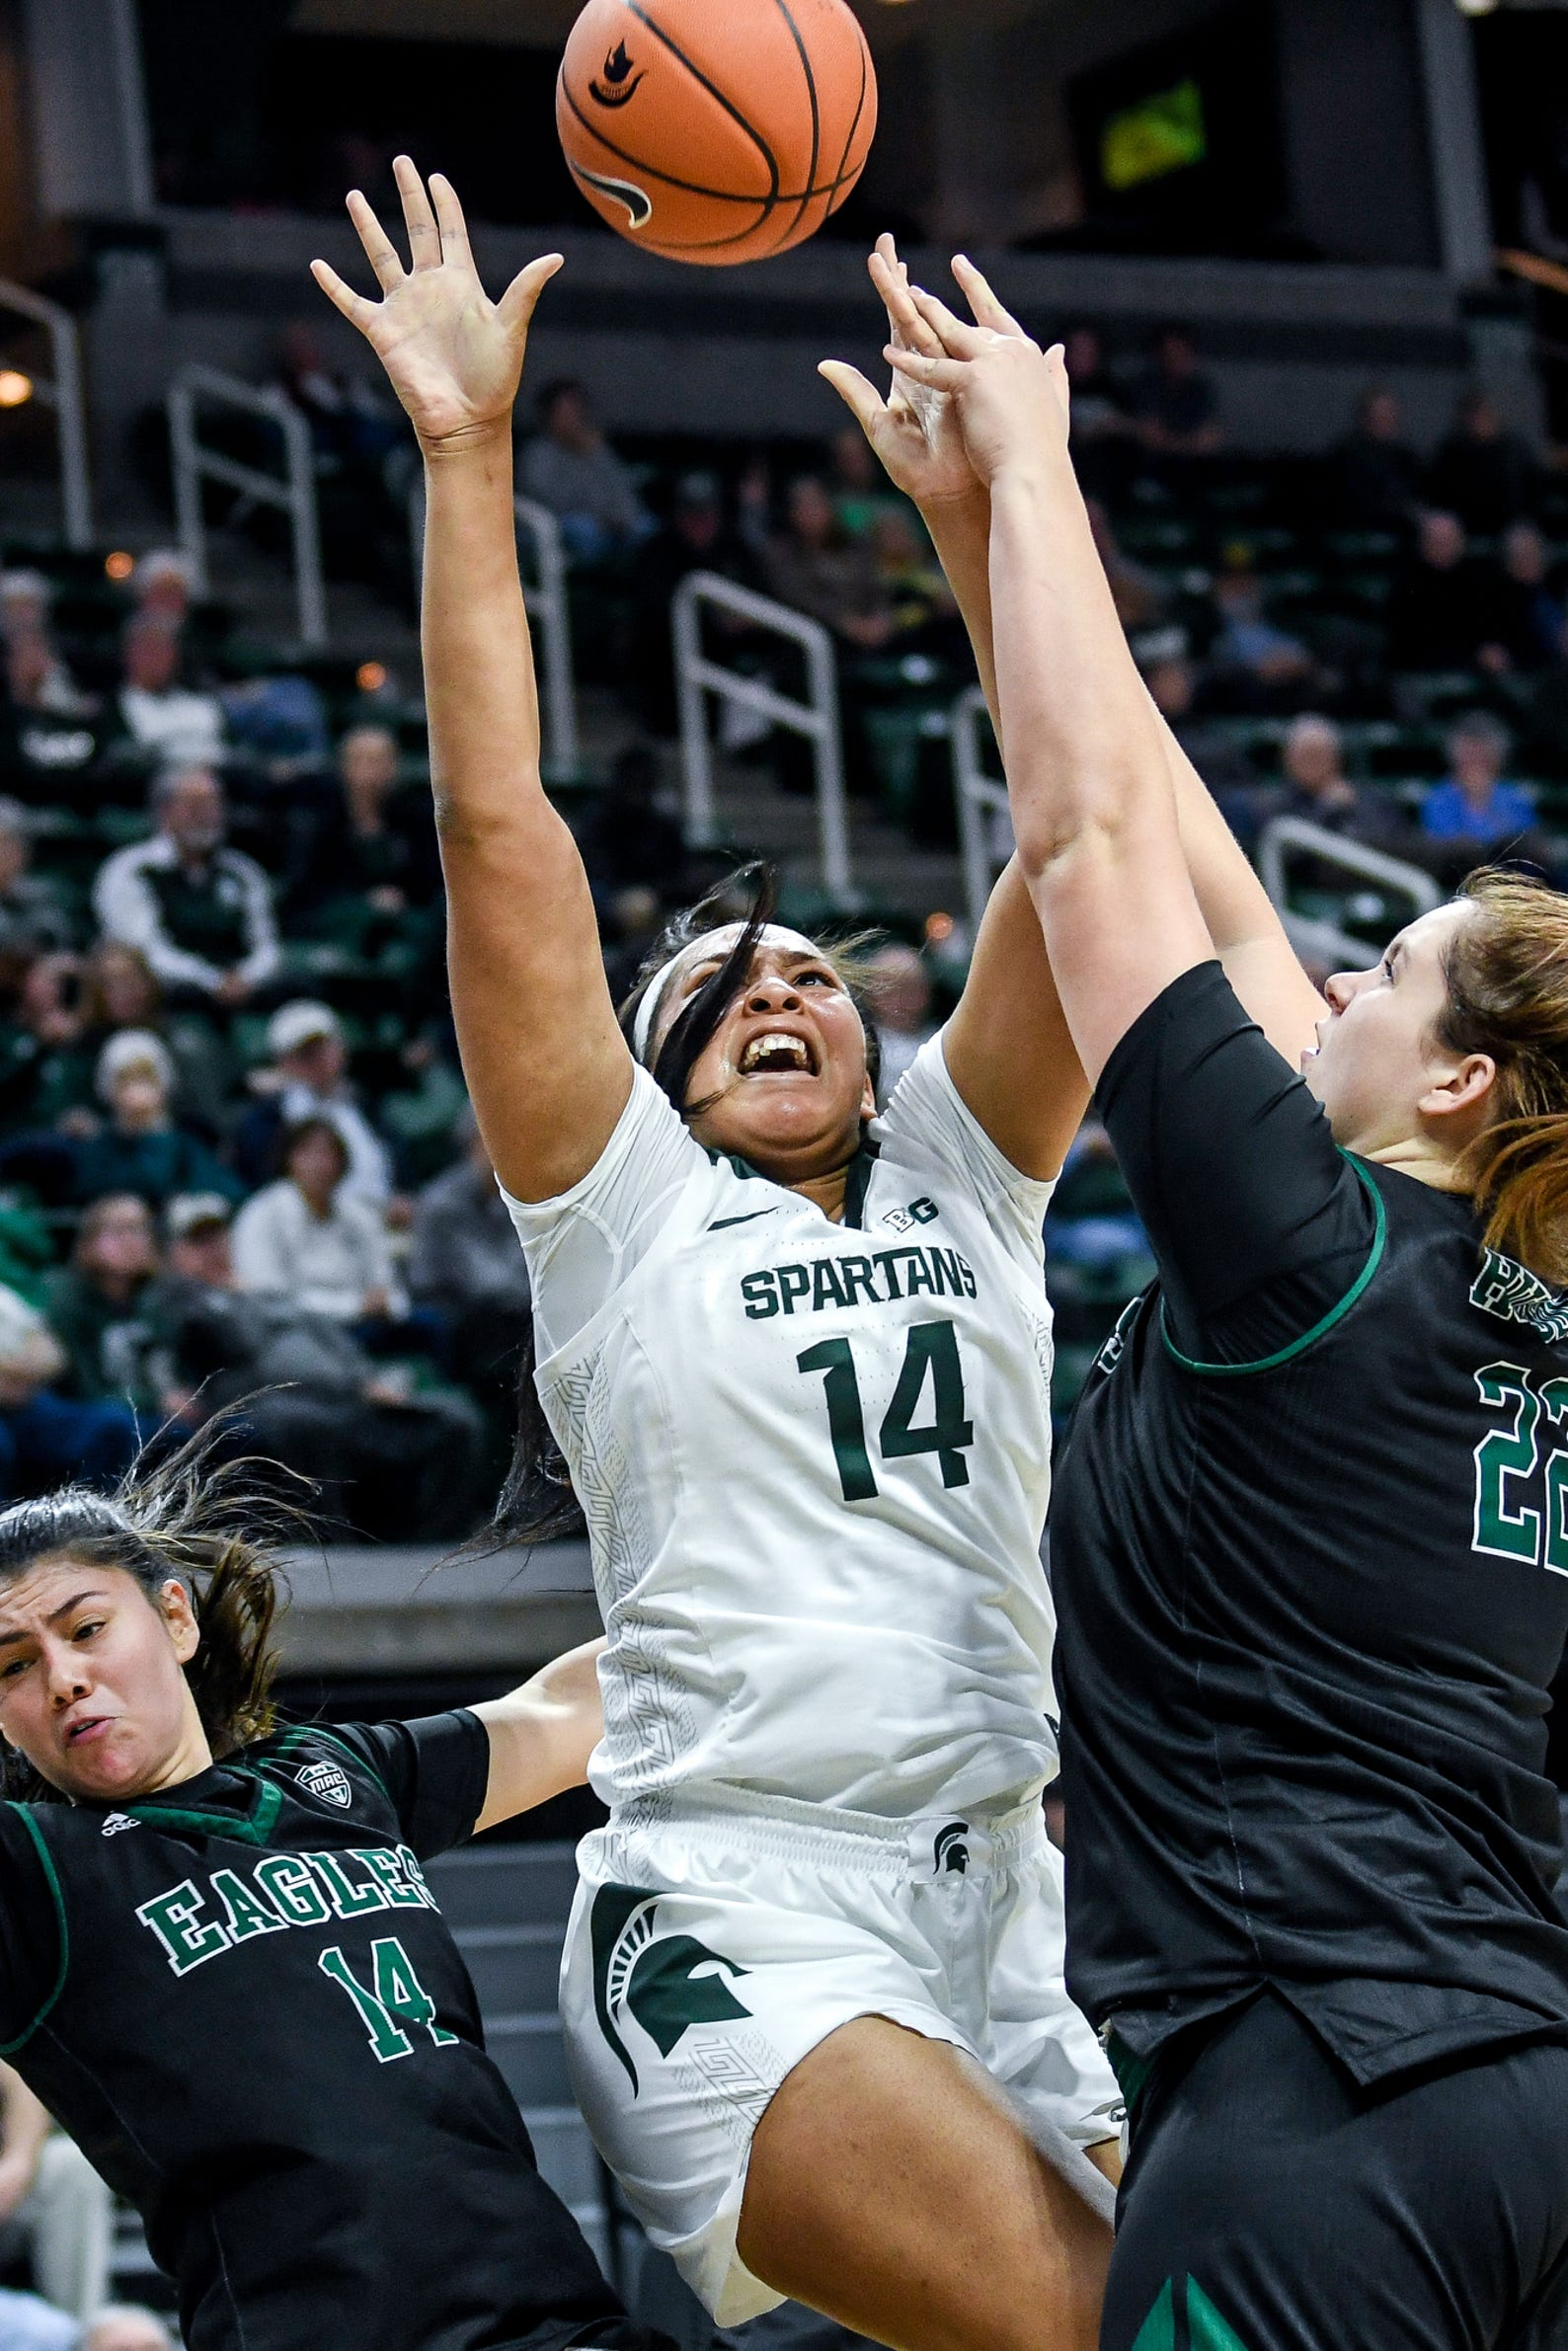 Michigan State's Taiyier Parks, center, shoots between Eastern Michigan's Natalia Pineda, left, and Autumn Hudson during the  fourth quarter on Tuesday, Nov. 5, 2019, at the Breslin Center in East Lansing.